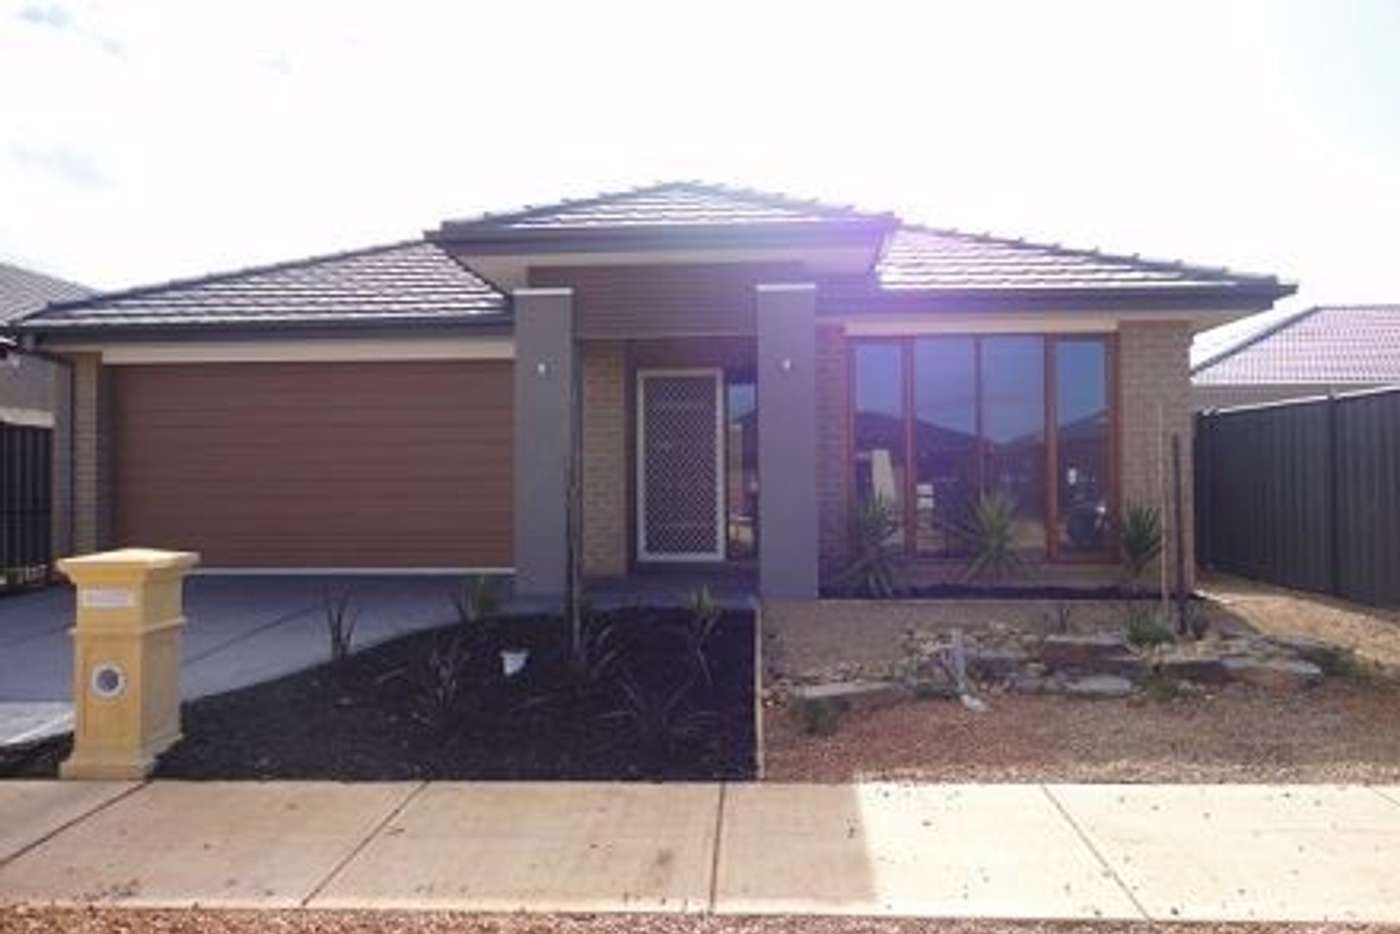 Main view of Homely house listing, 2 Snowsill Circuit, Point Cook VIC 3030